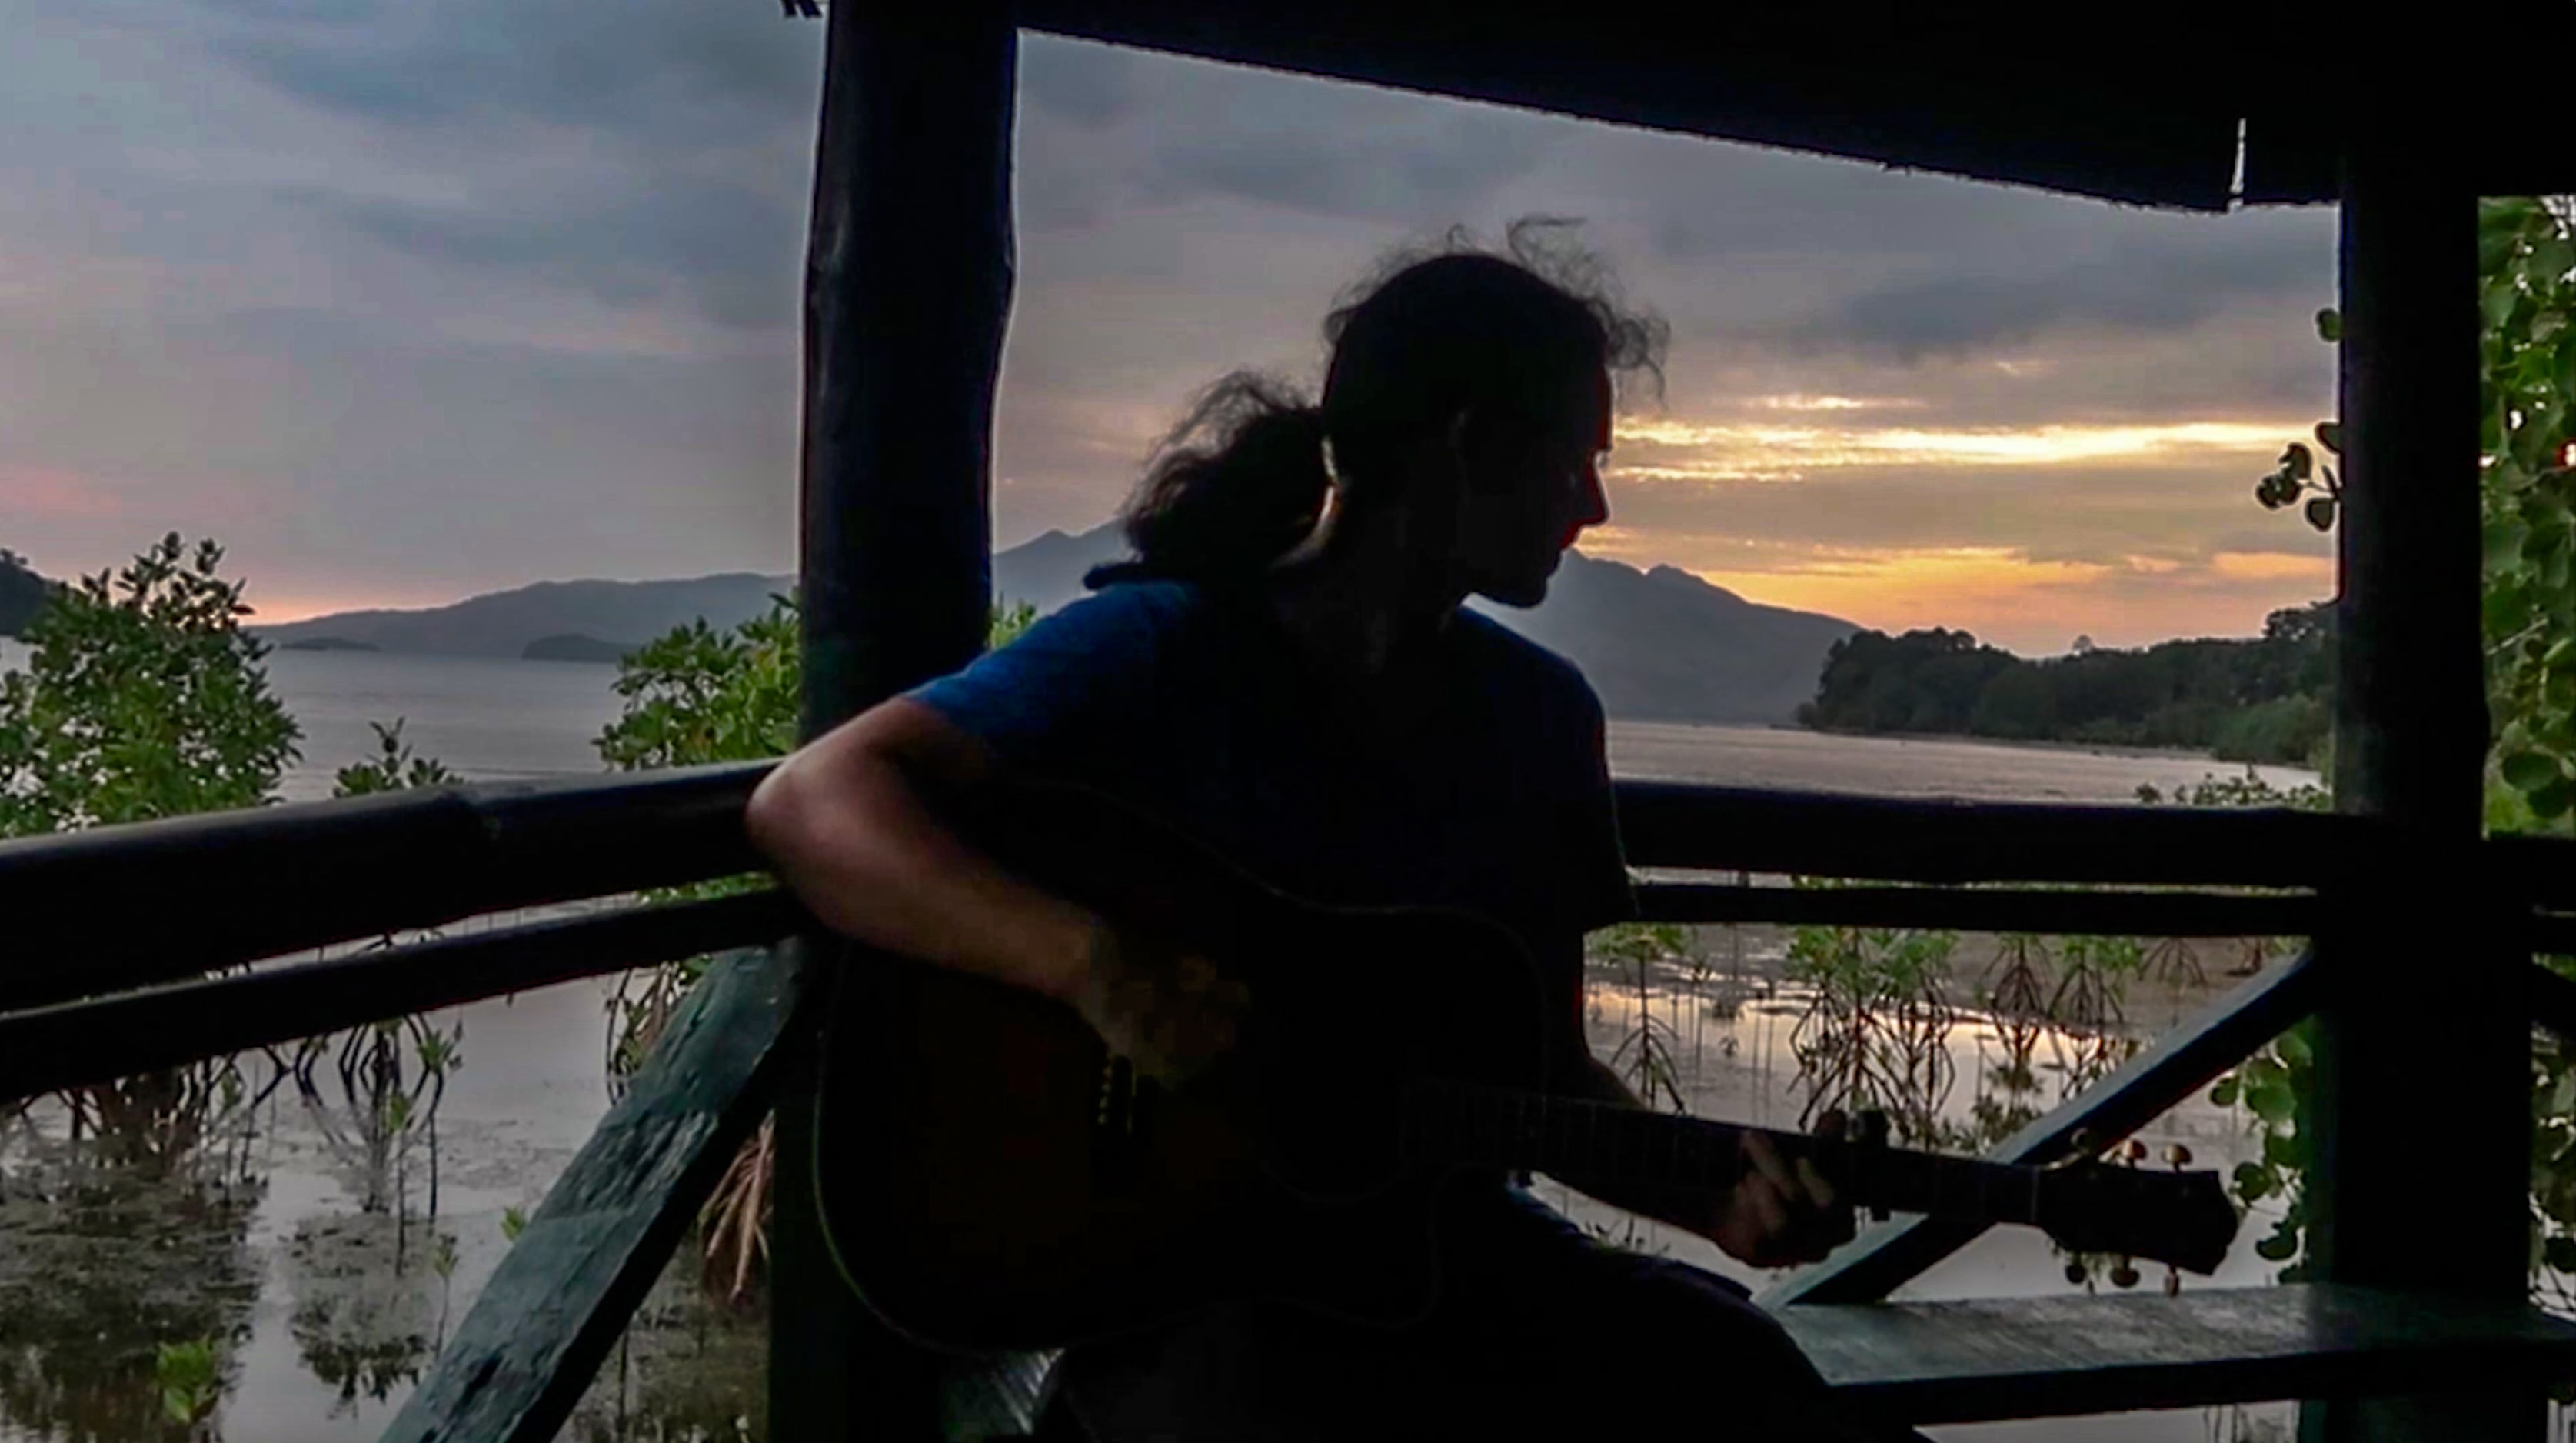 lenny through paradise play guitar in subic zambales philippines